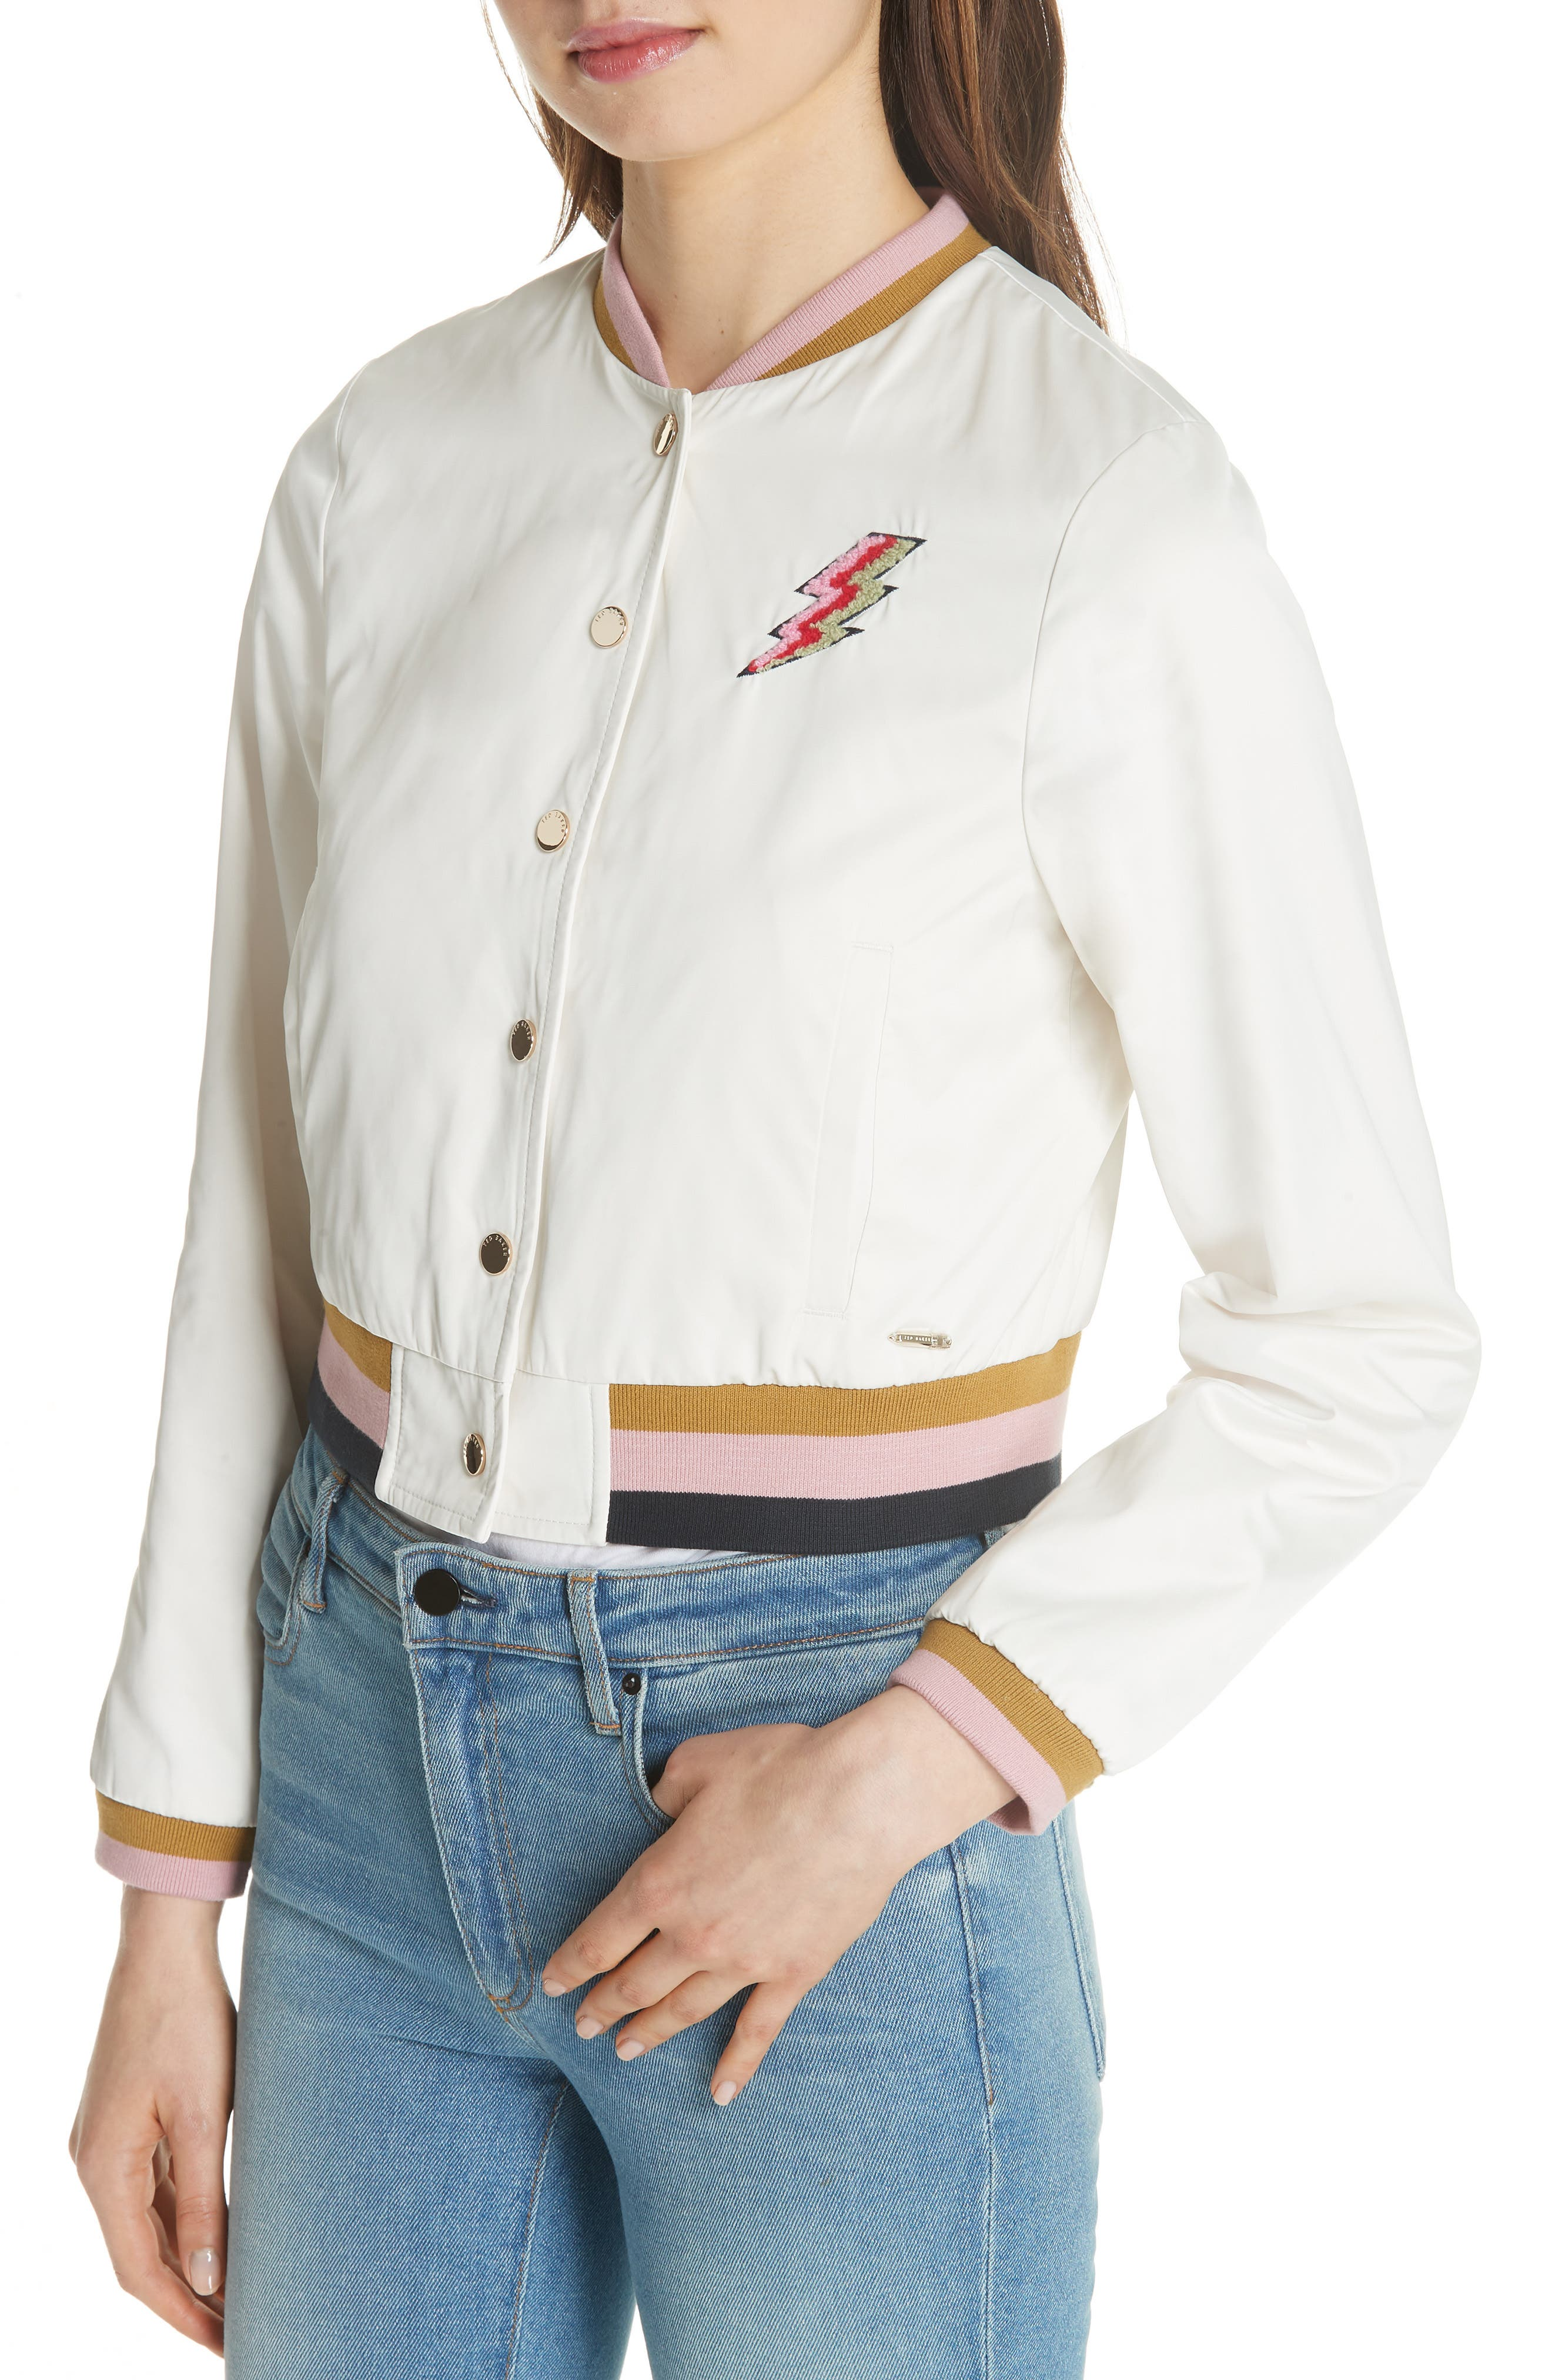 Colour by Numbers Bomber Jacket,                             Alternate thumbnail 4, color,                             Ivory